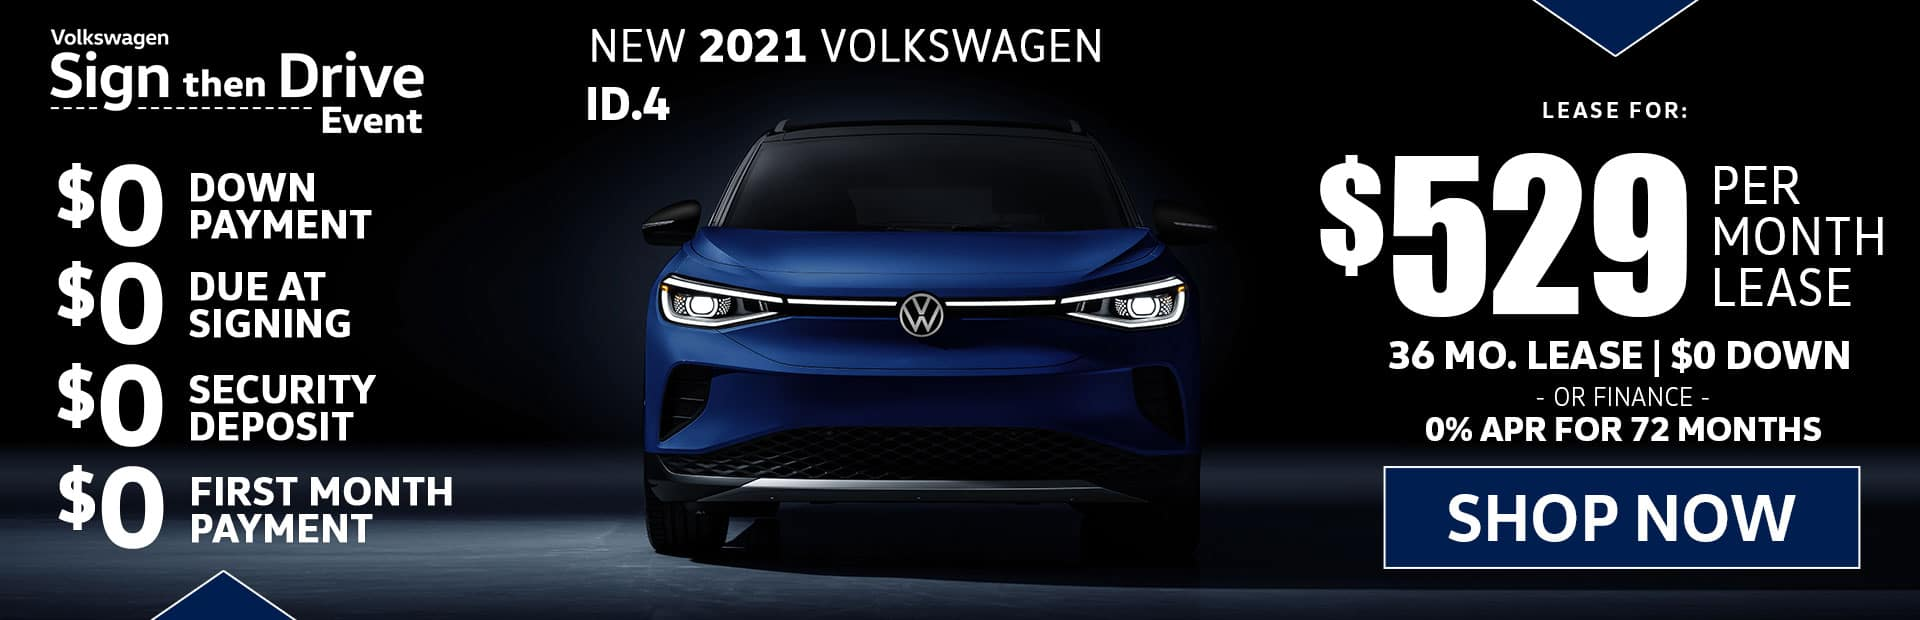 new vw id 4 lease special in los angeles